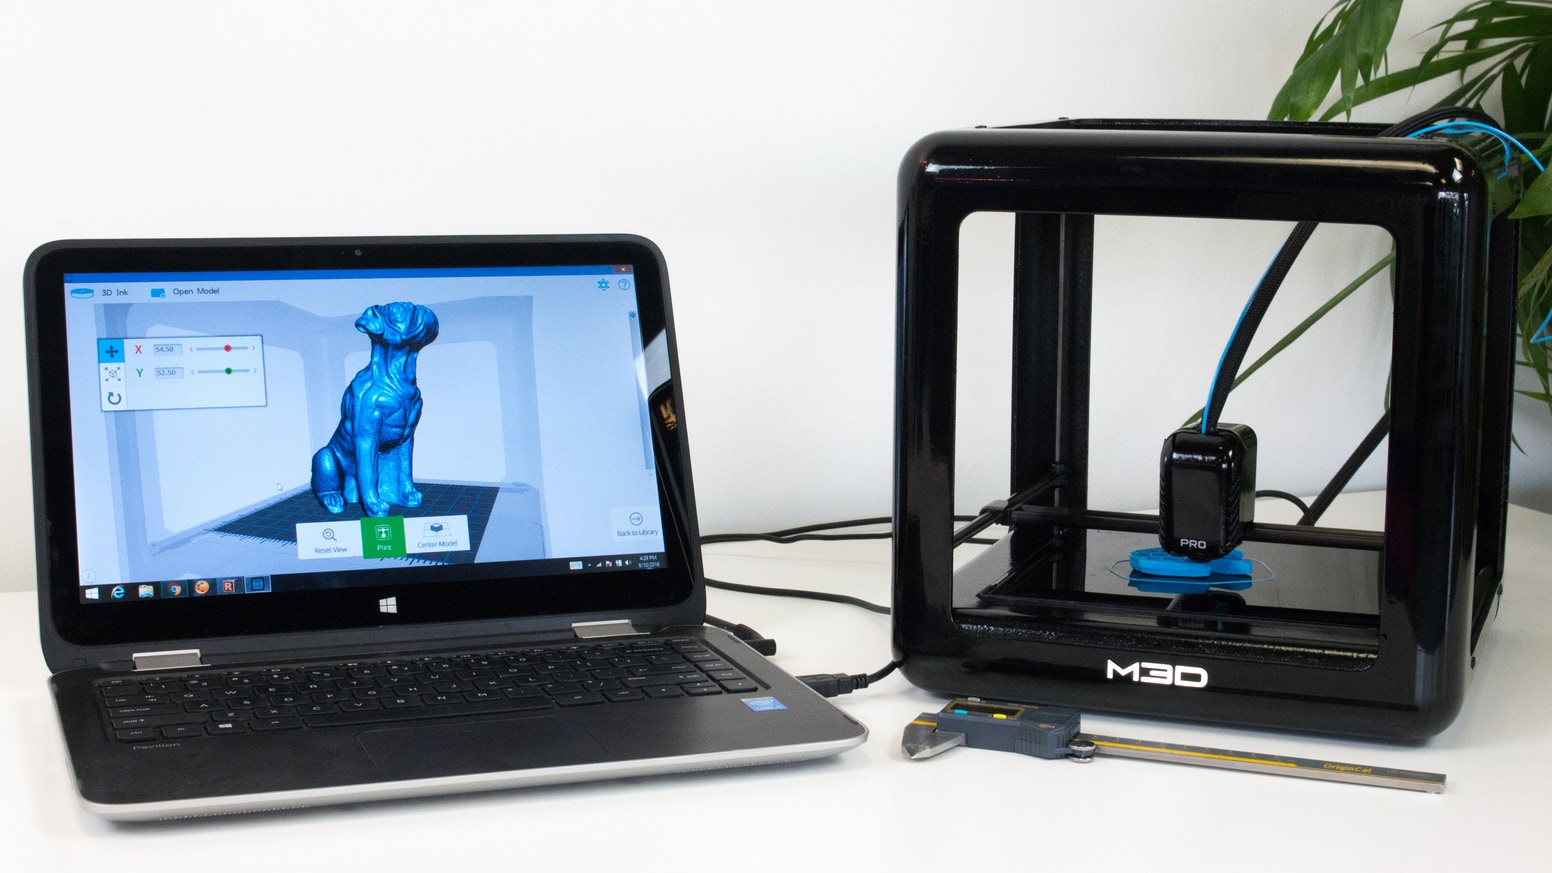 The Professional 3D Printer that bridges the gap between power users and consumers through intelligent sensor feedback.